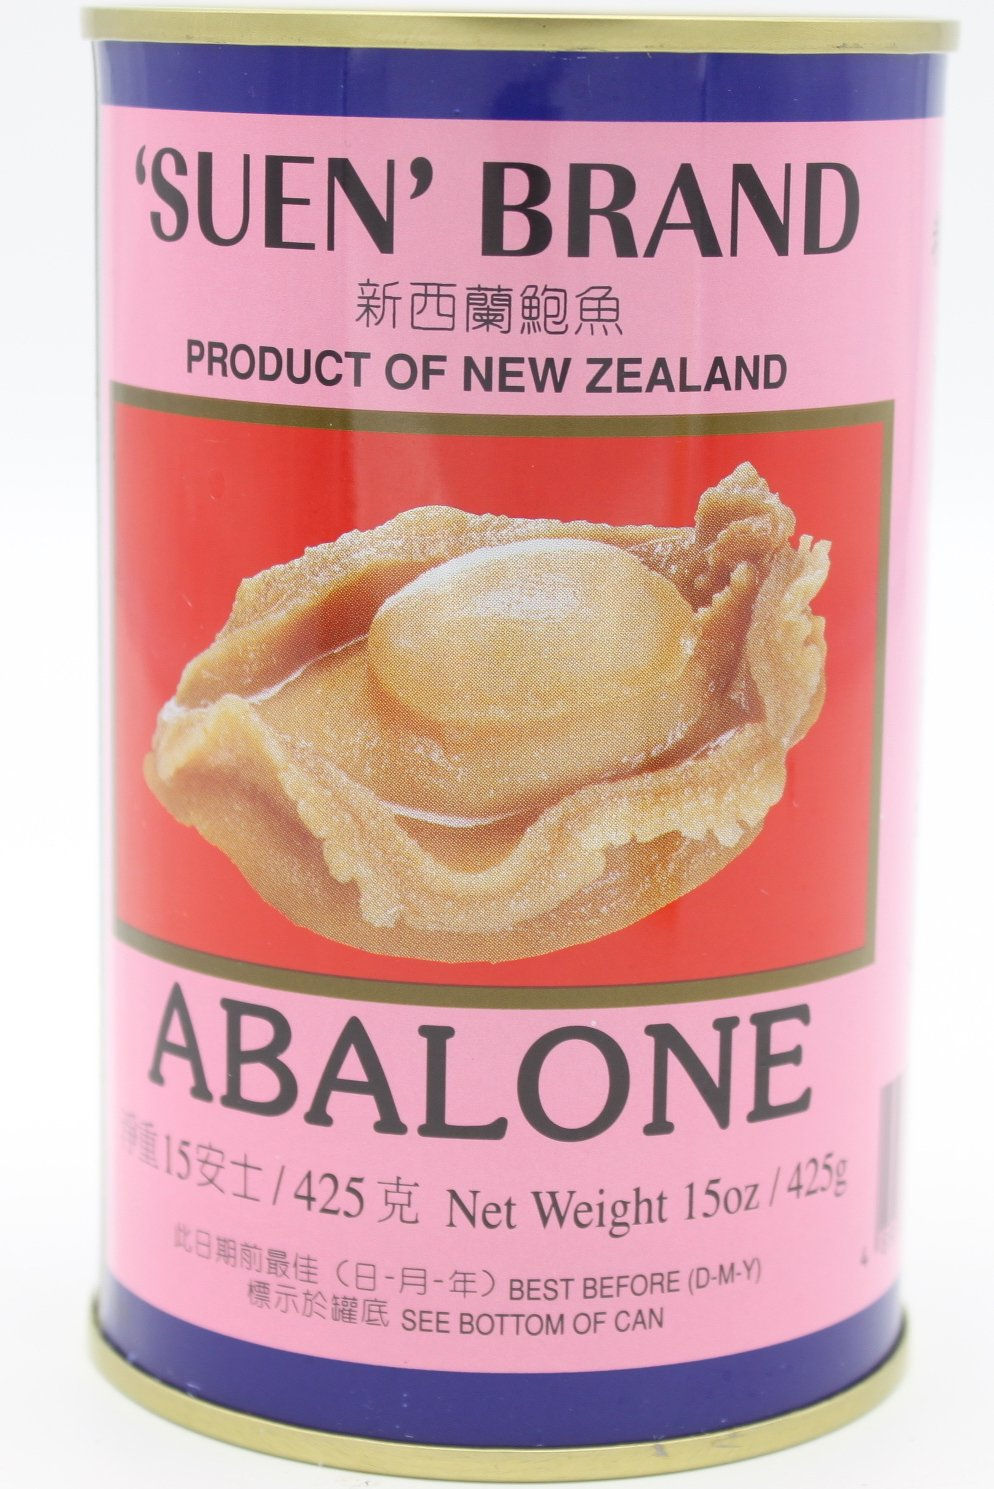 Suen Brand Canned Seafood Popular Cuisine Ingredient Canned Abalone 信字鮑魚 (net weight 15oz 425grams) Per Order Free Worldwide Air Mail